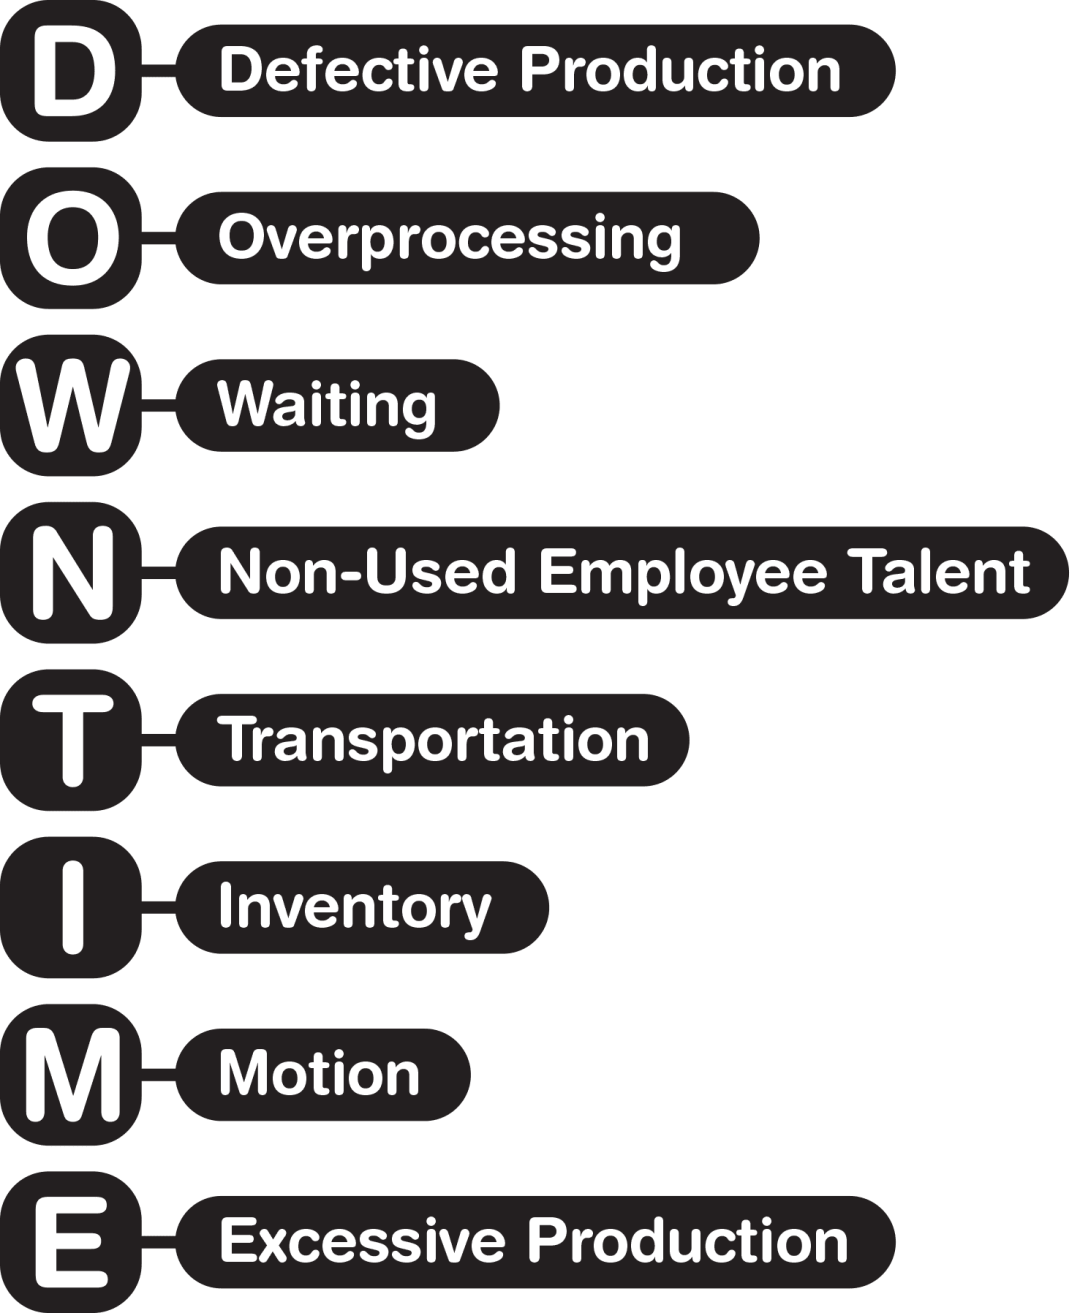 Downtime is an acronym that represents the eight sources of waste within the Lean framework: defective production, overprocessing, waiting, non-used employee talent, transportation, inventory, motion, and excessive production. Visibility within an organization's operations and supply chain is crucial to waste elimination efforts, as visibility acts as an enabler to uncover the sources of waste.